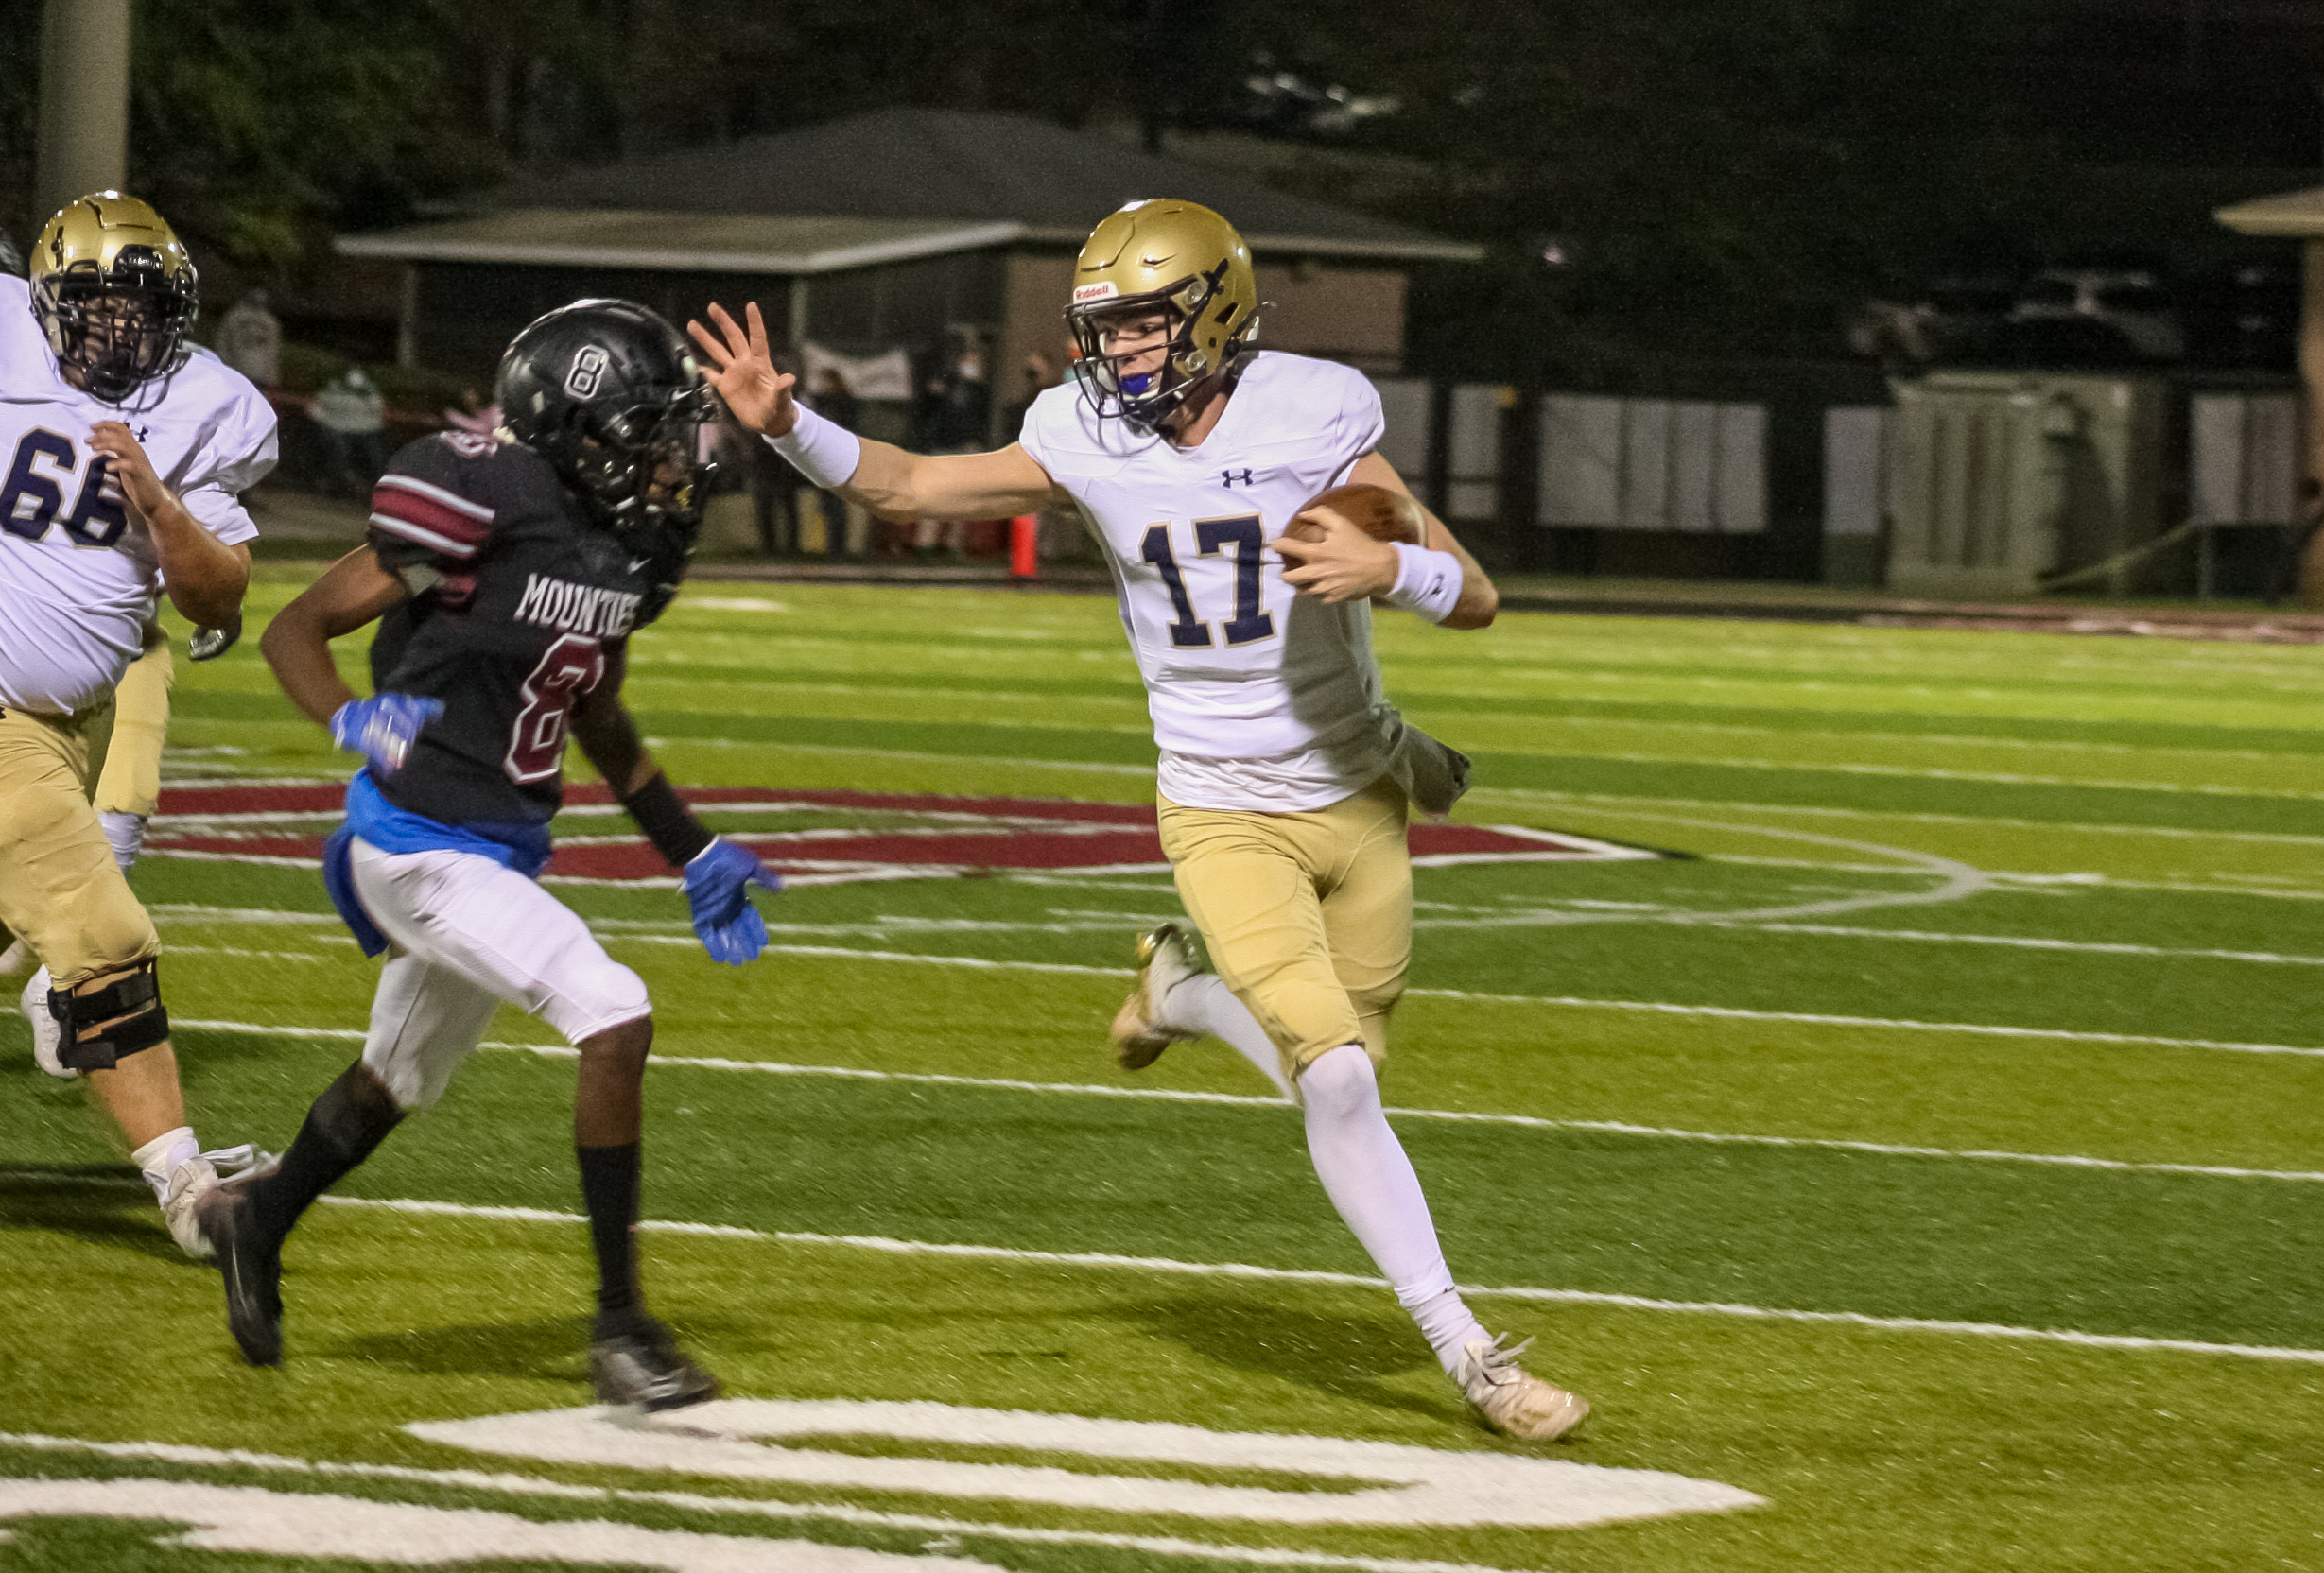 Briarwood storms past Shades Valley 42-19